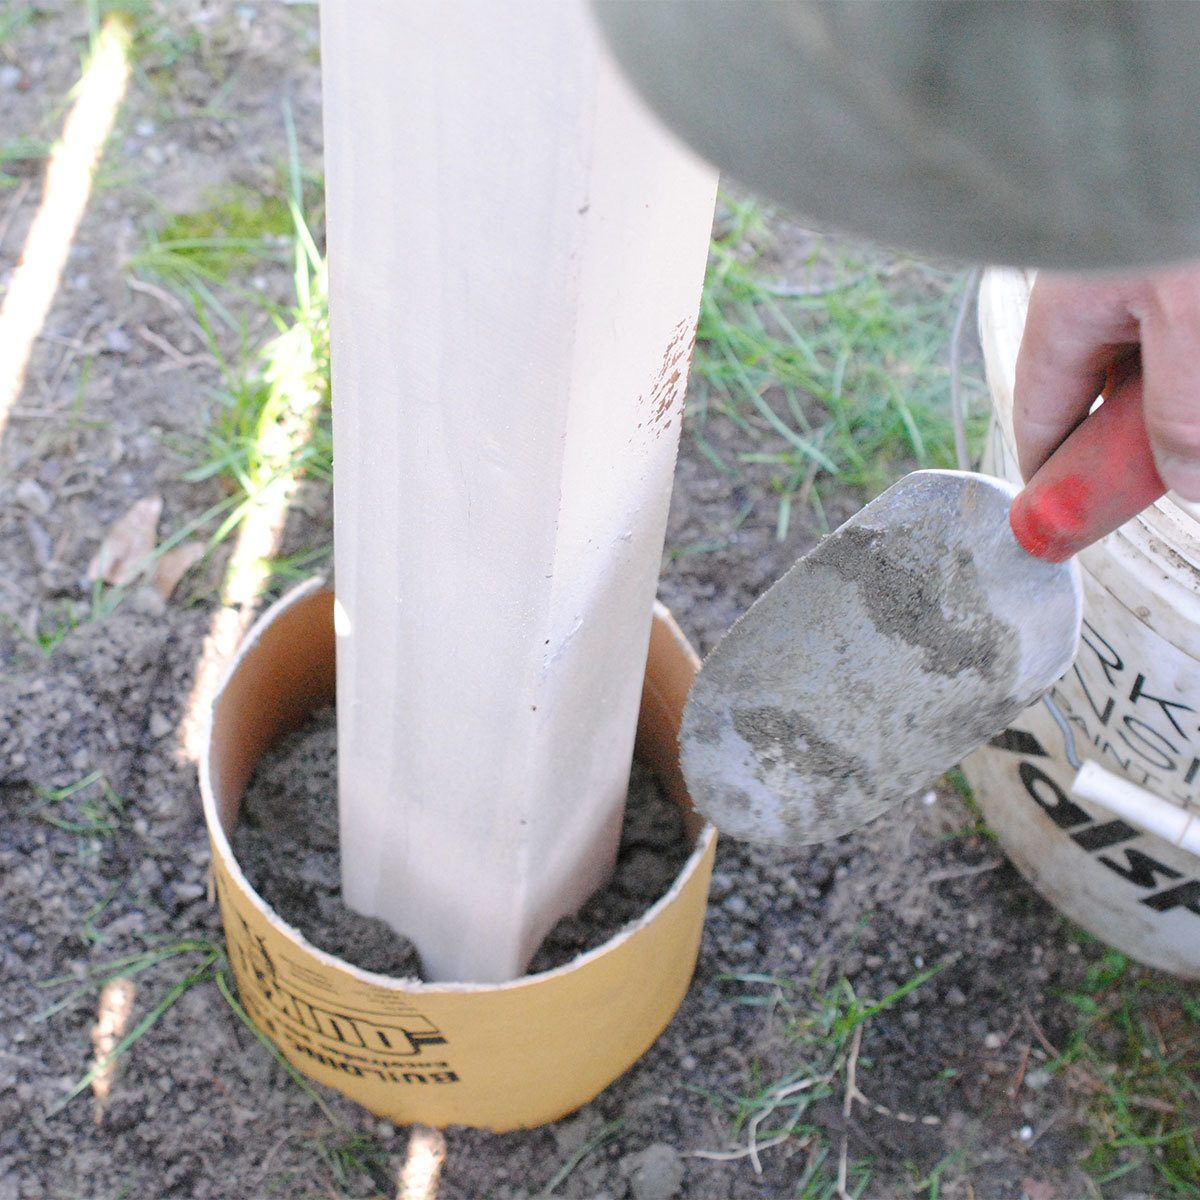 Fill tube with cement and insert post birdhouse pole